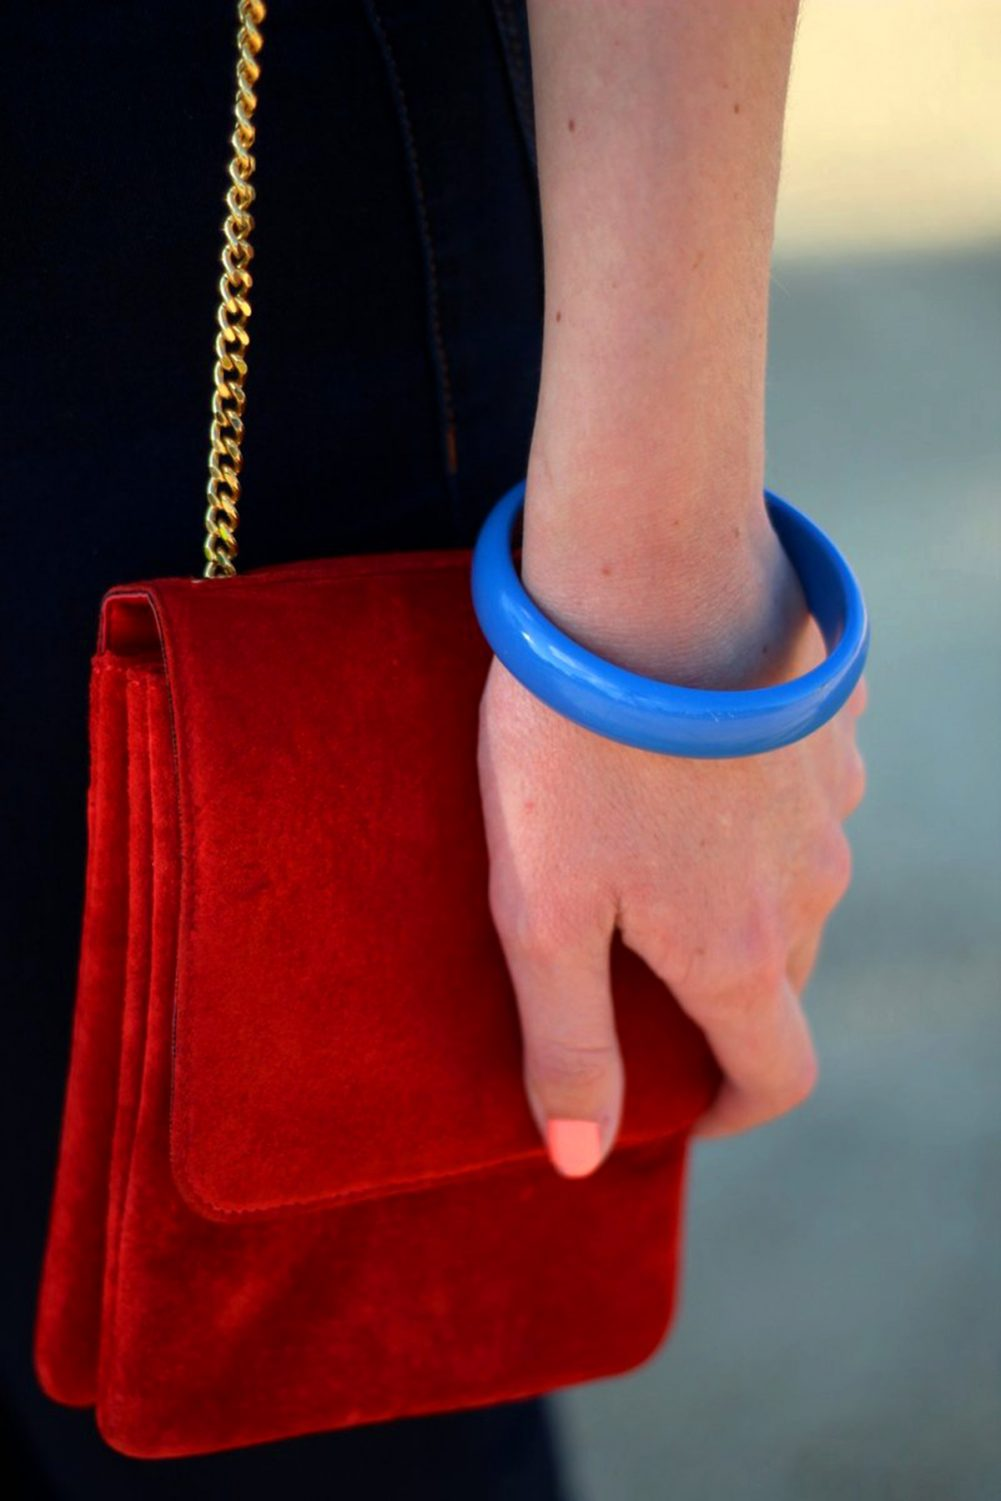 Outfit details: vintage small red suede purse with gold chain strap and blue 1980s bangle